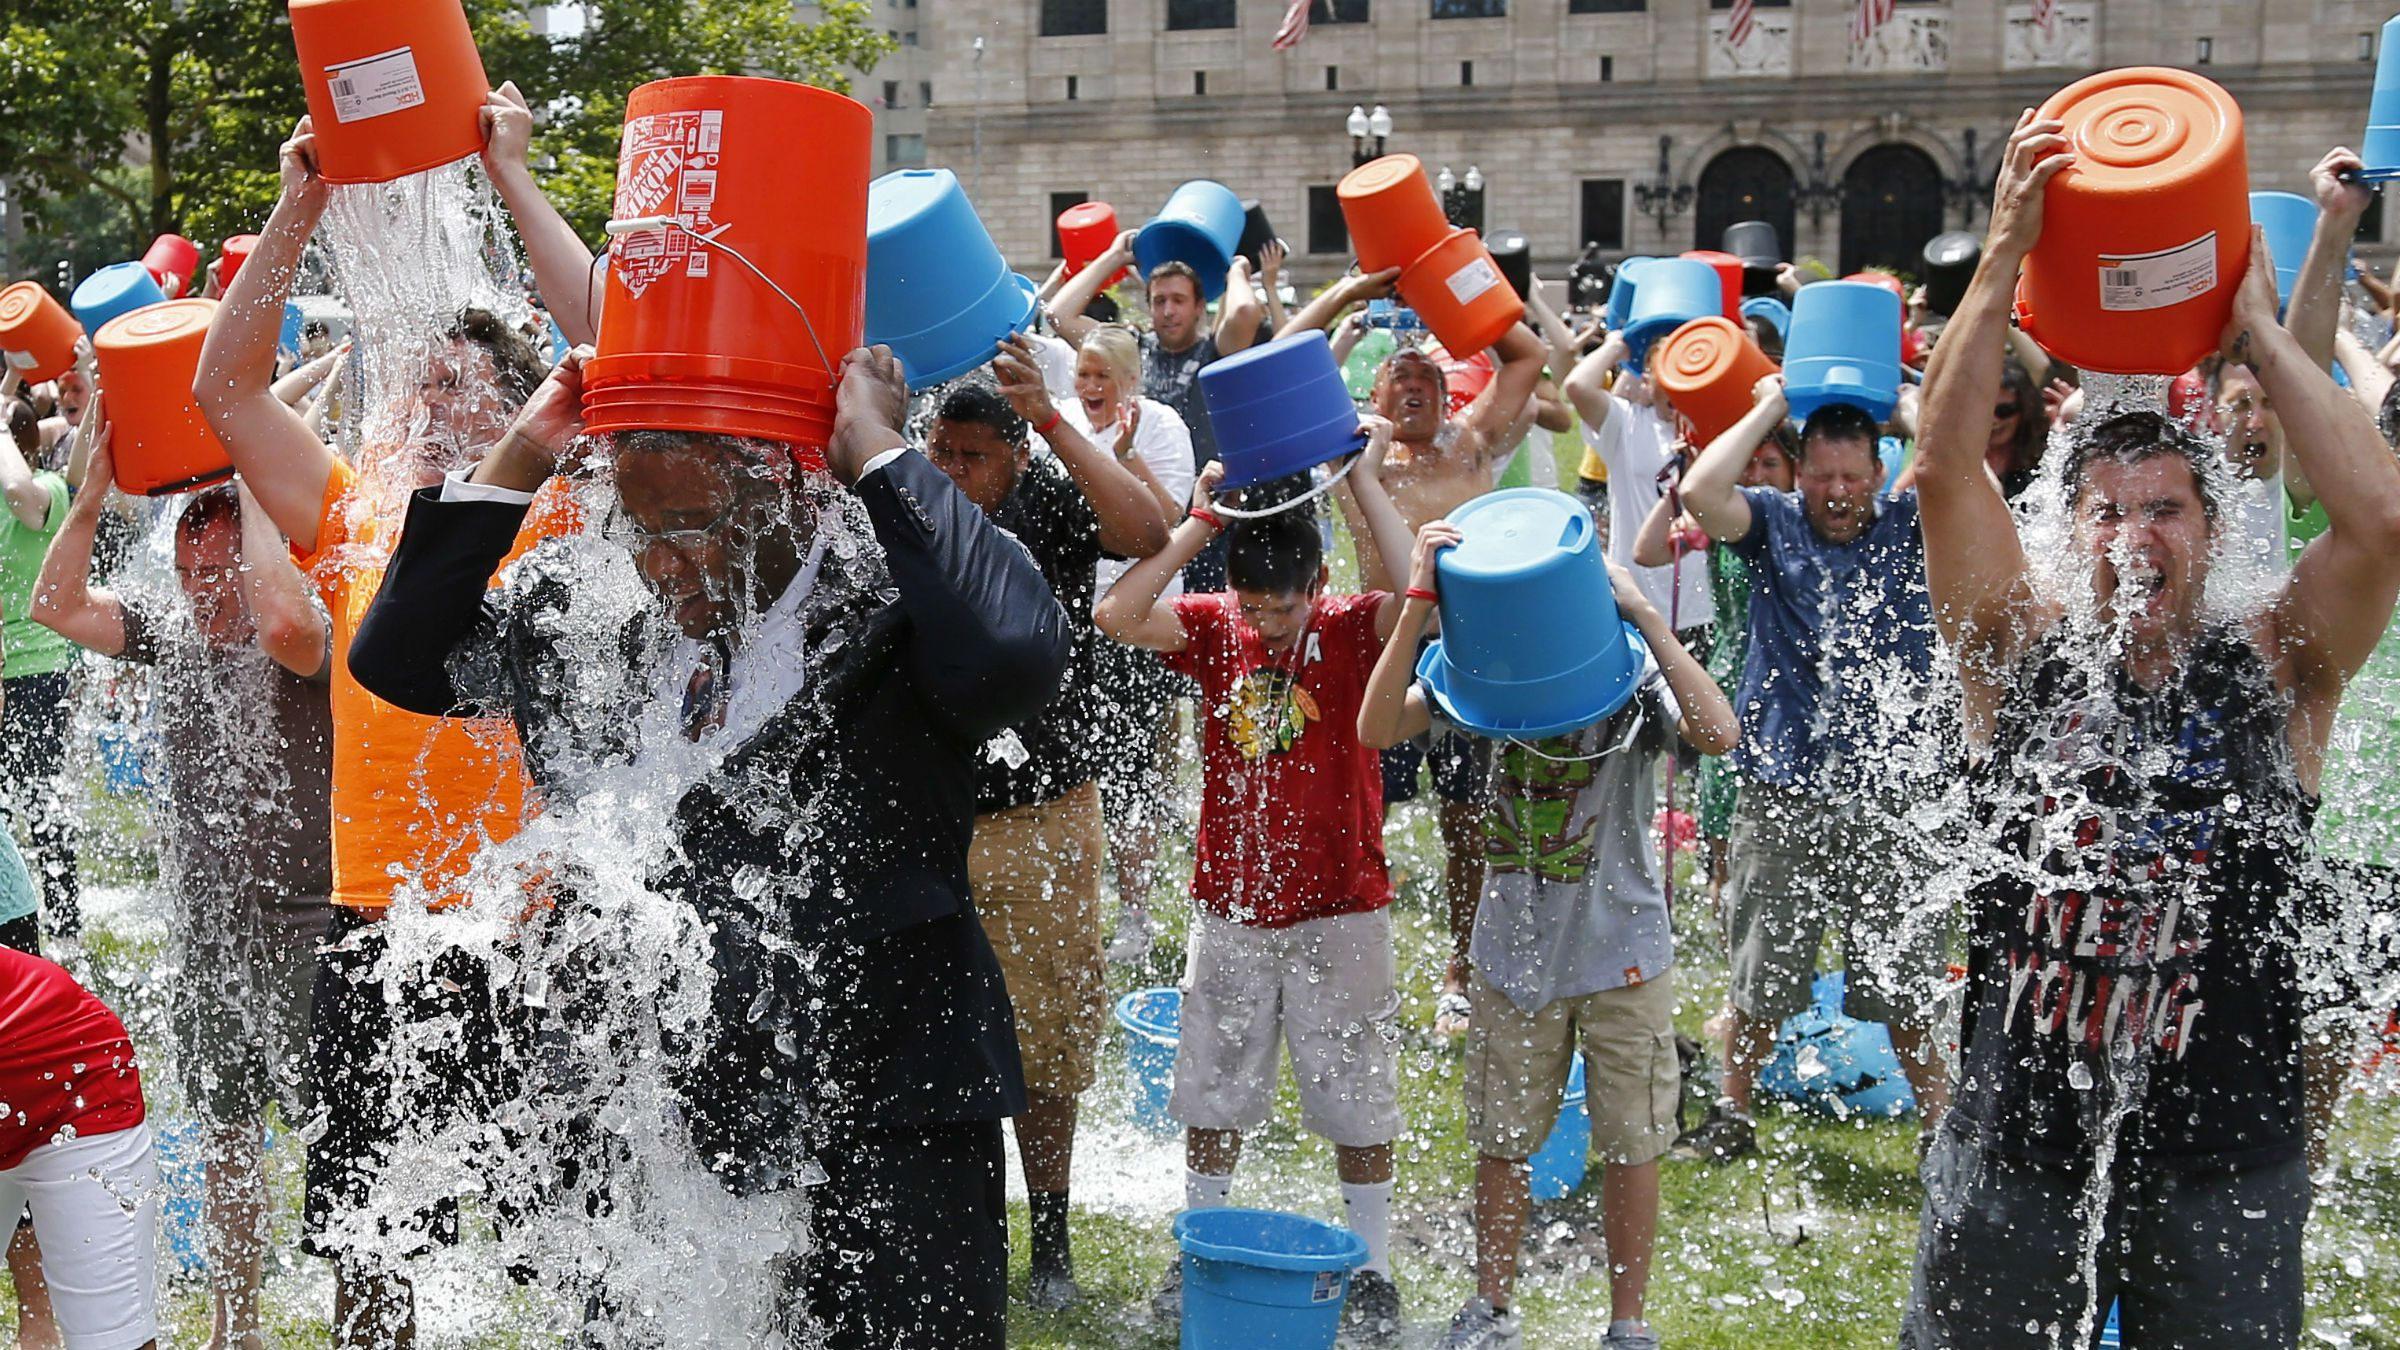 Boston City Councillor Tito Jackson, left in suit, leads some 200 people in the ice bucket challenge at Boston's Copley Square, Thursday, Aug. 7, 2014 to raise funds and awareness for ALS.The idea is easy: Take a bucket of ice water, dump it over your head, video it and post it on social media. Then challenge your friends, strangers, even celebrities to do the same within 24 hours or pay up for charity. (AP Photo/Elise Amendola)